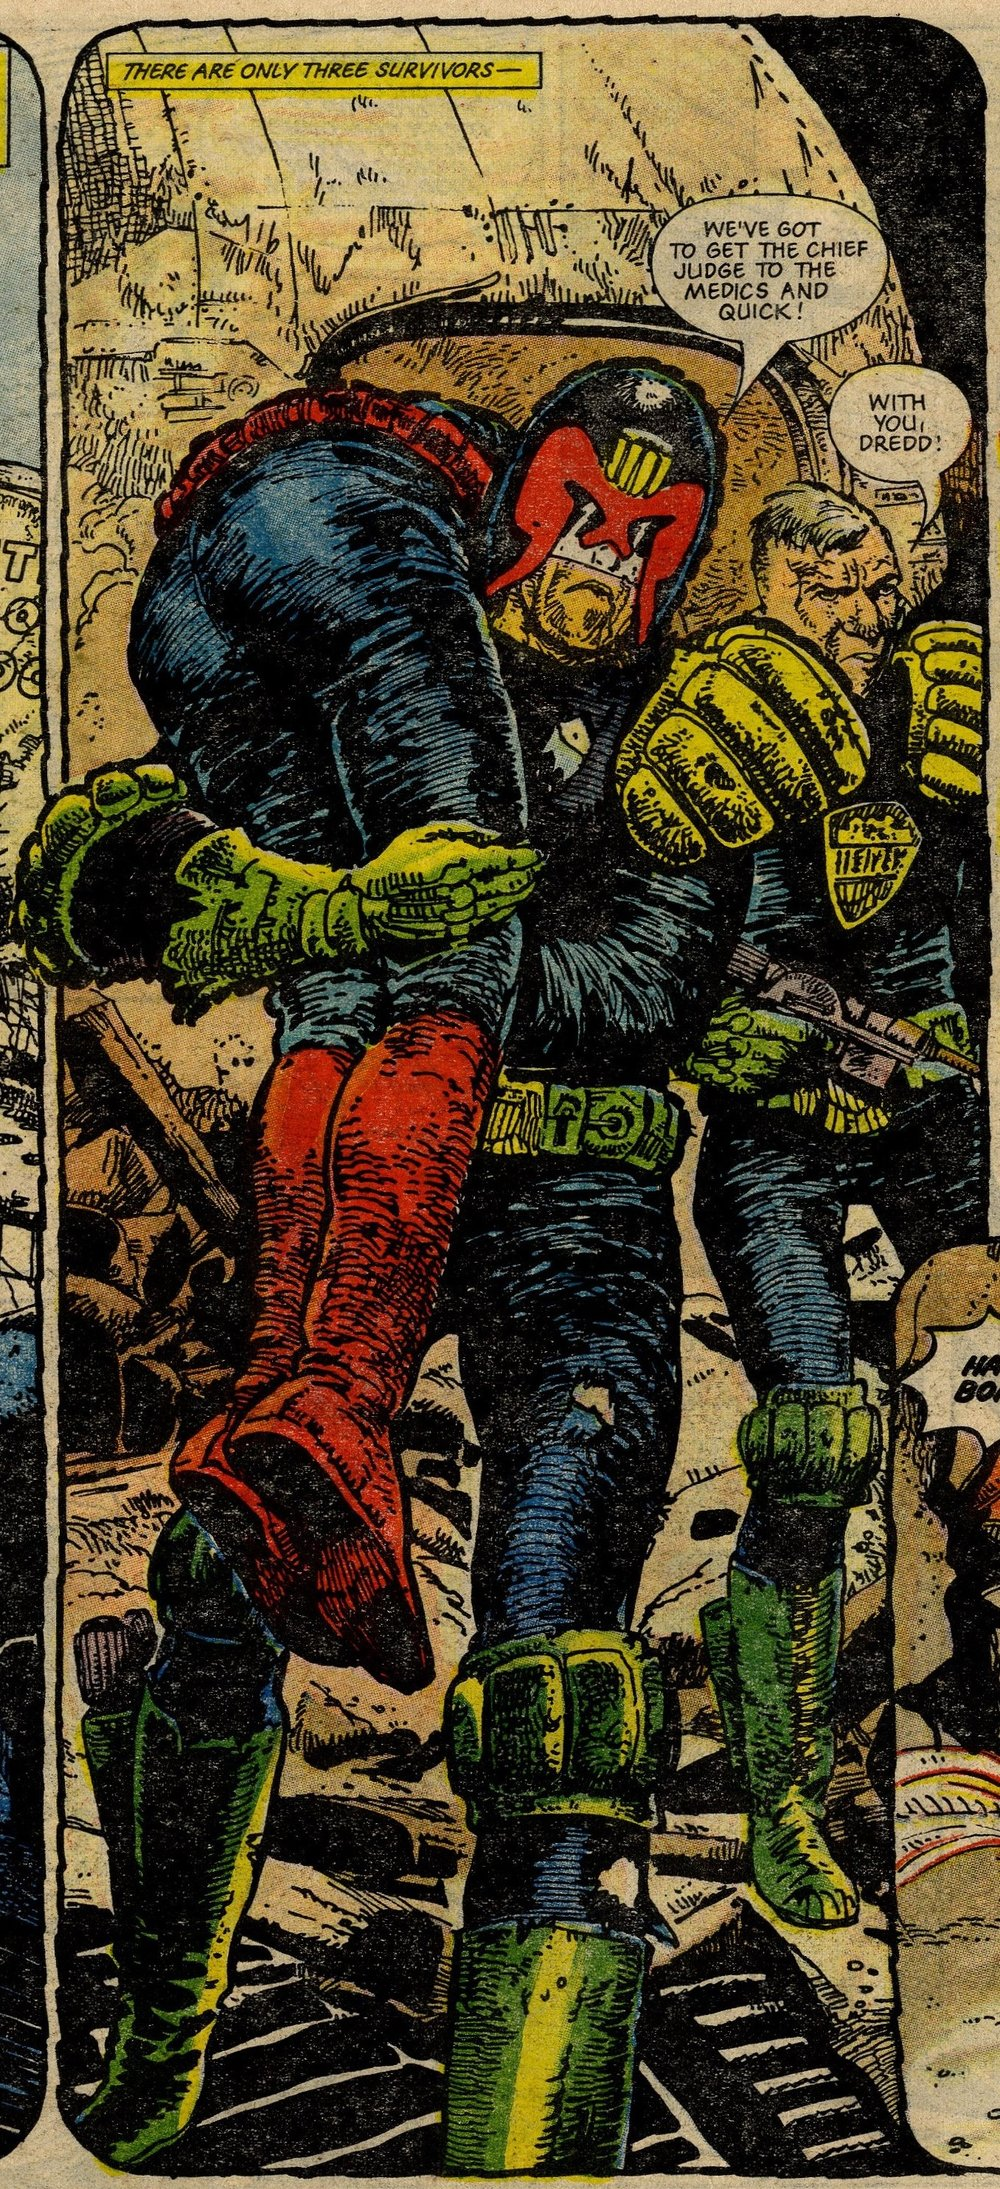 Judge Dredd: The Apocalypse War: John Wagner and Alan Grant (writers), Carlos Ezquerra (artist)